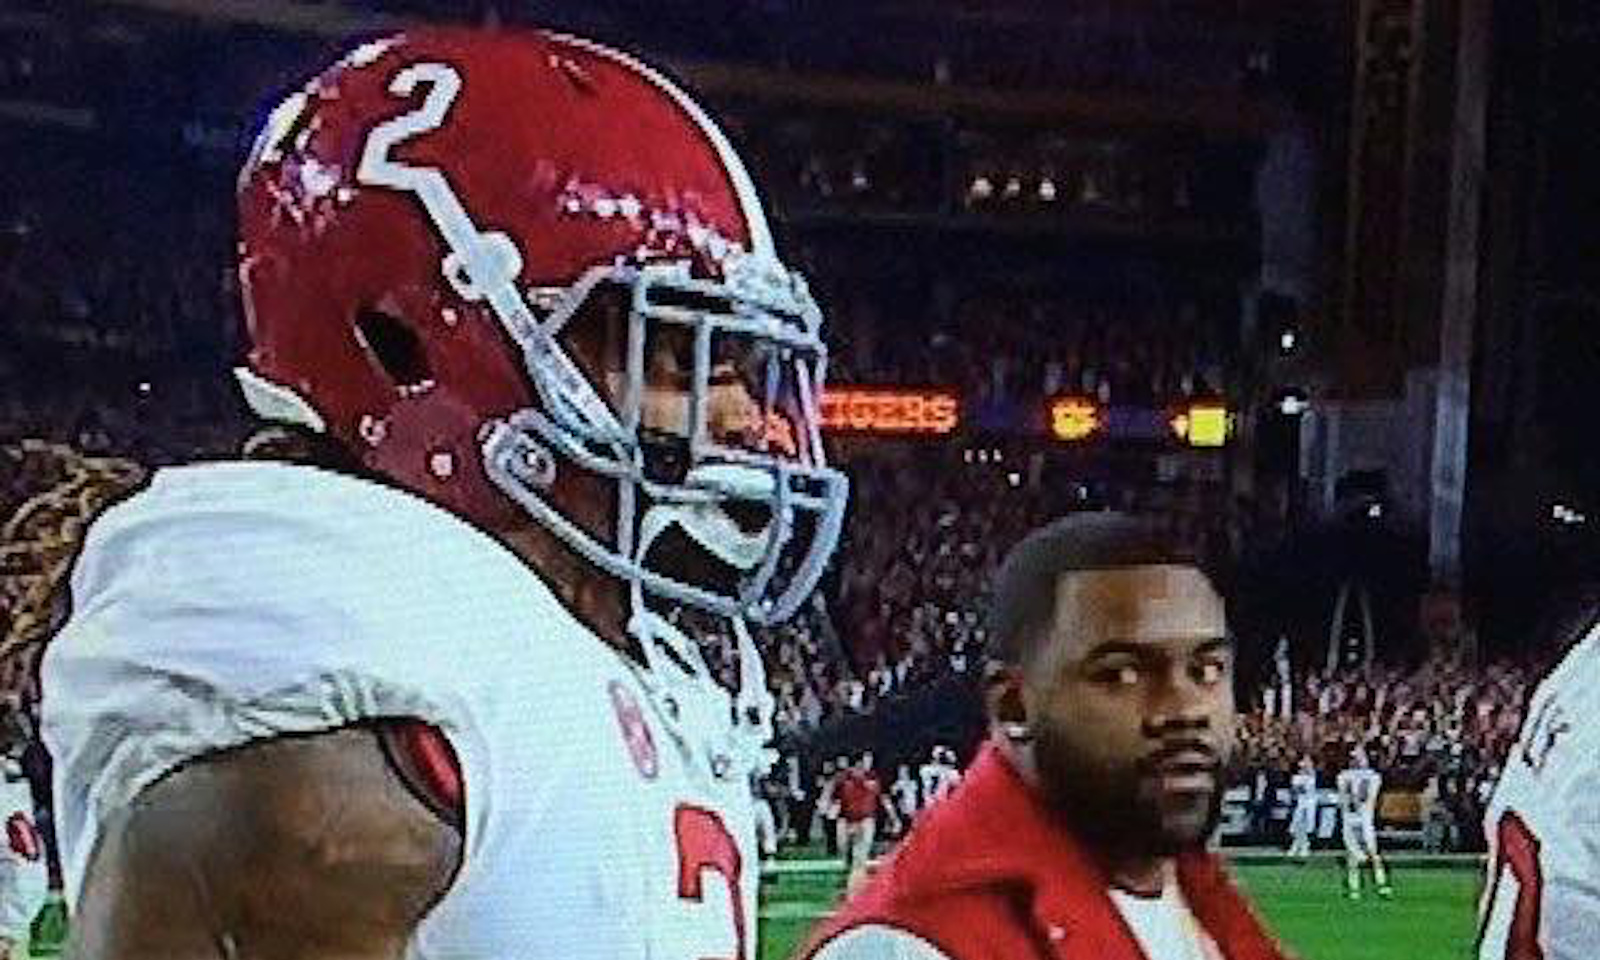 Mark Ingram wants smoke with person who took viral photo of he and Derrick Henry at 2016 CFP title game